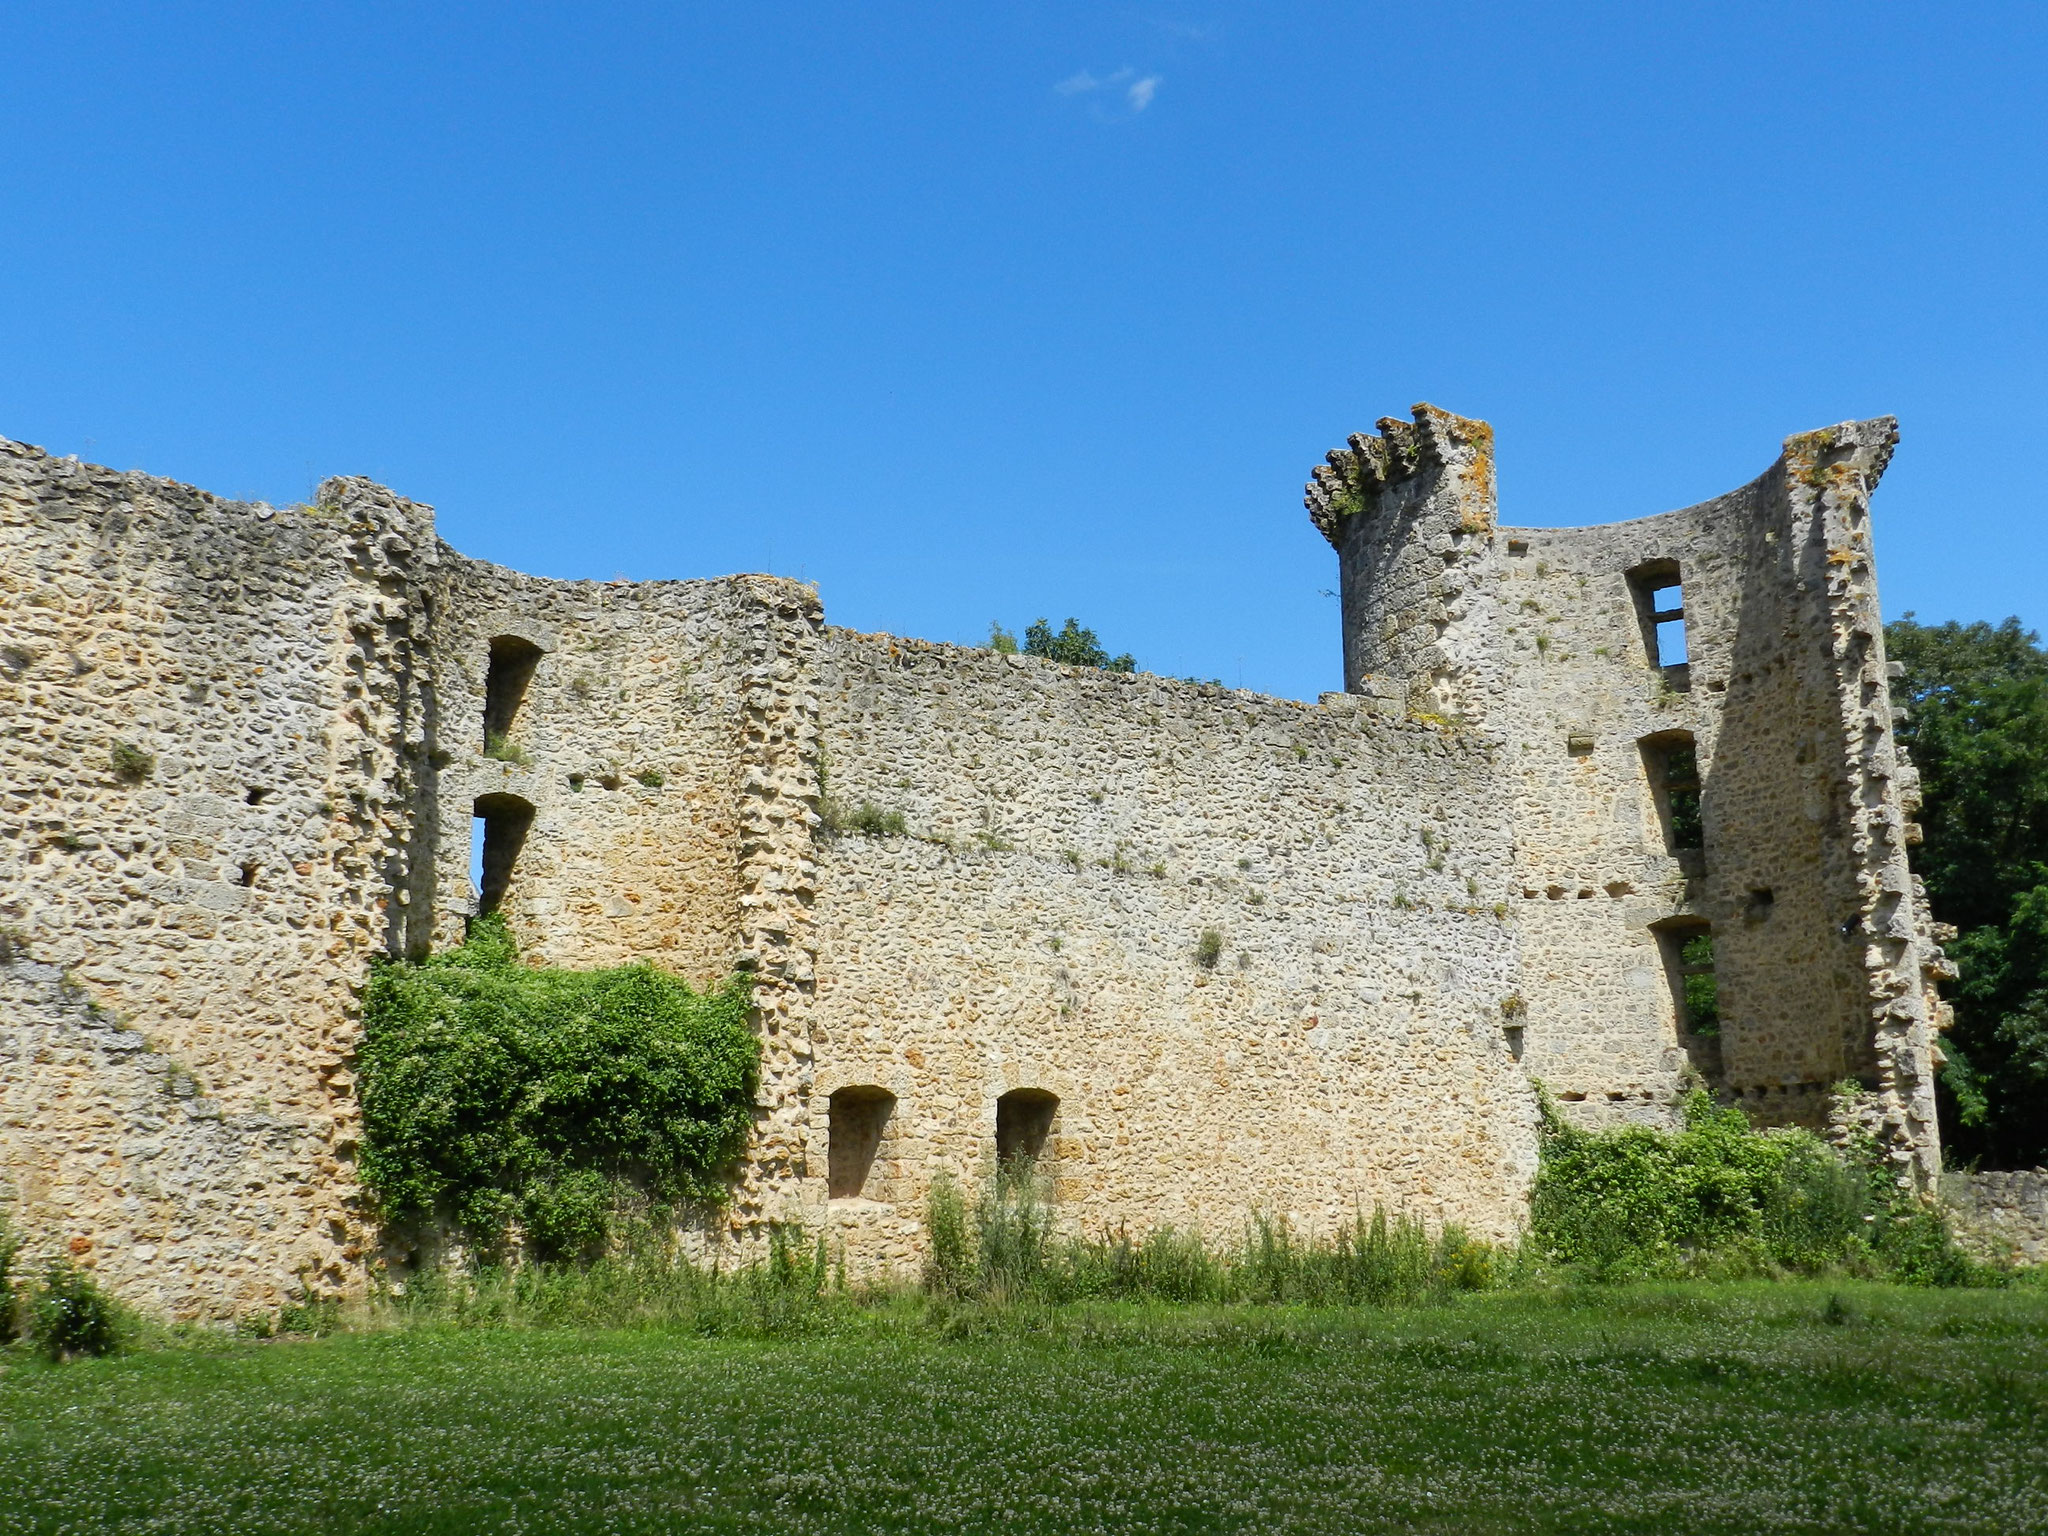 Chevreuse castle